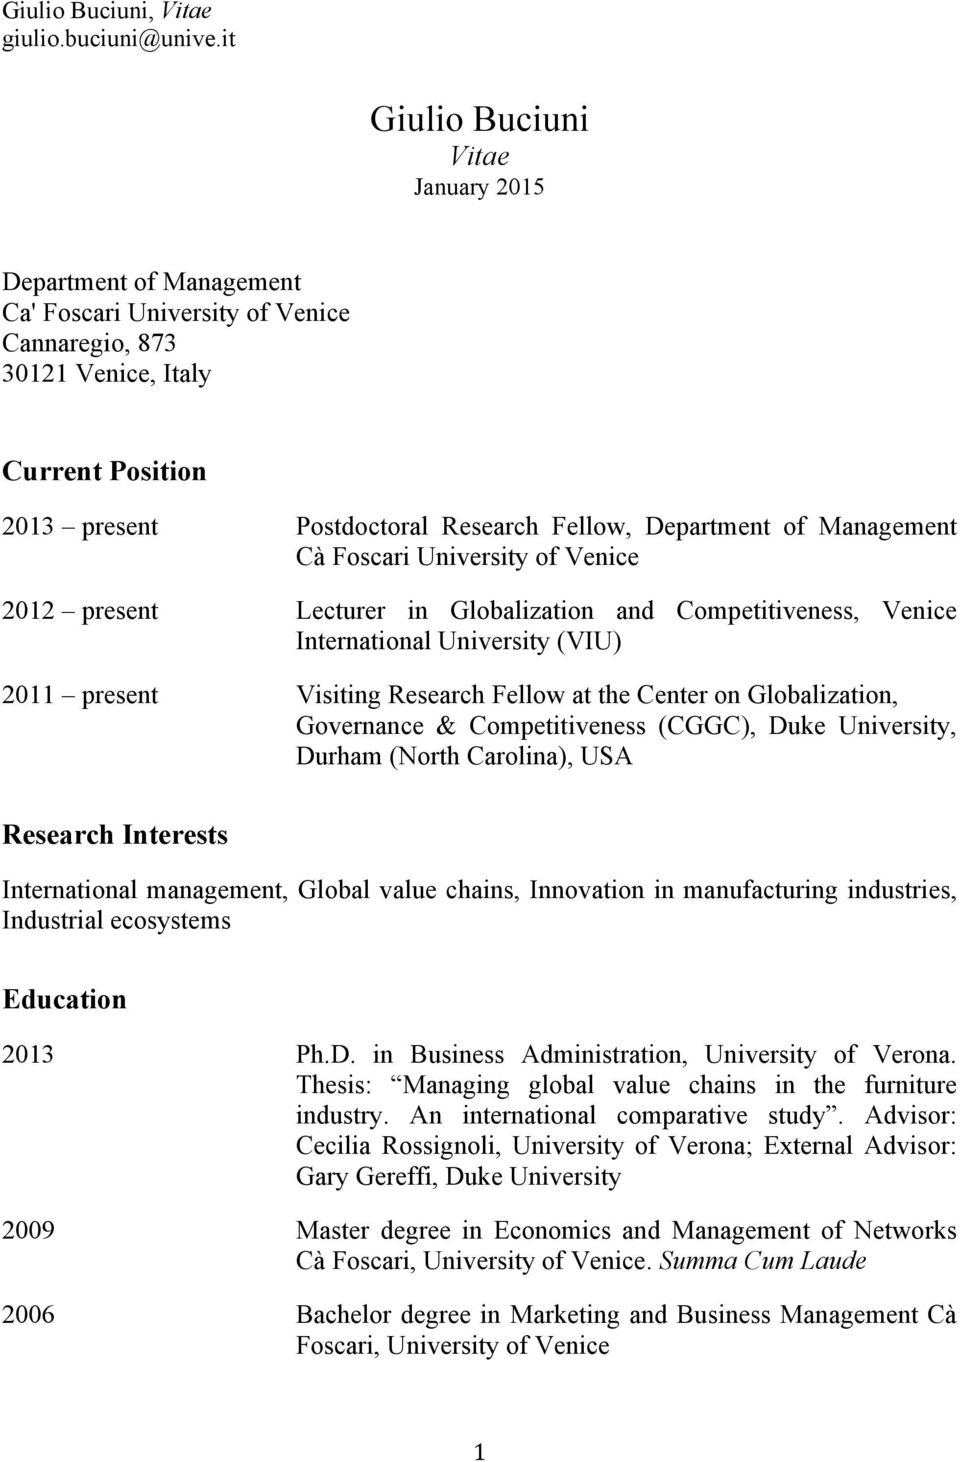 Duke University, Durham (North Carolina), USA Research Interests International management, Global value chains, Innovation in manufacturing industries, Industrial ecosystems Education 2013 Ph.D. in Business Administration, University of Verona.